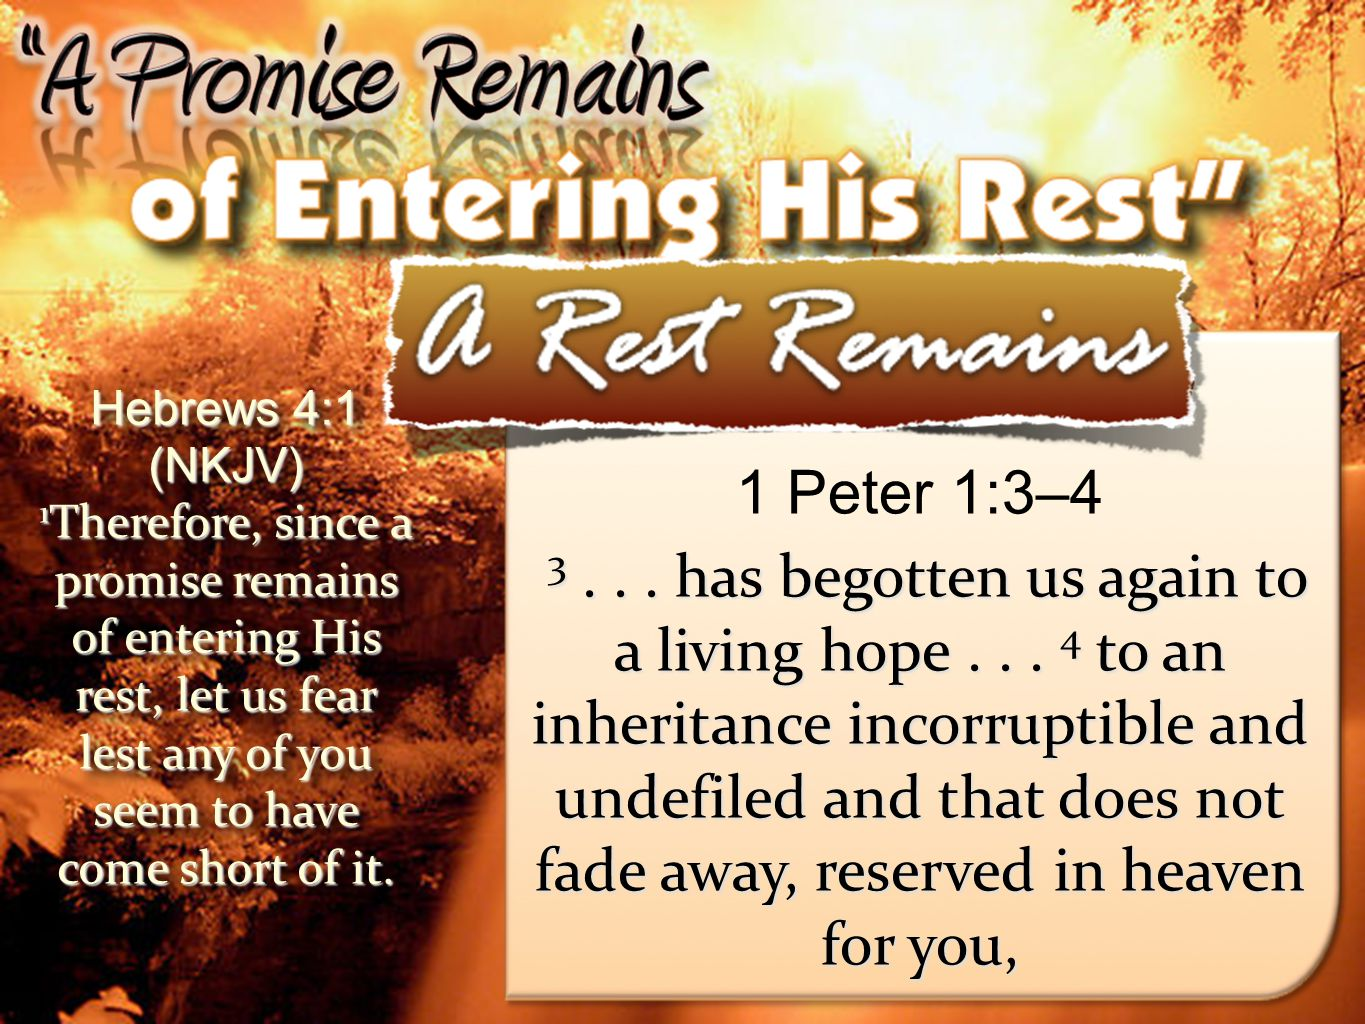 12 Hebrews 4:1 (NKJV) 1 Therefore, since a promise remains of entering His rest, let us fear lest any of you seem to have come short of it.